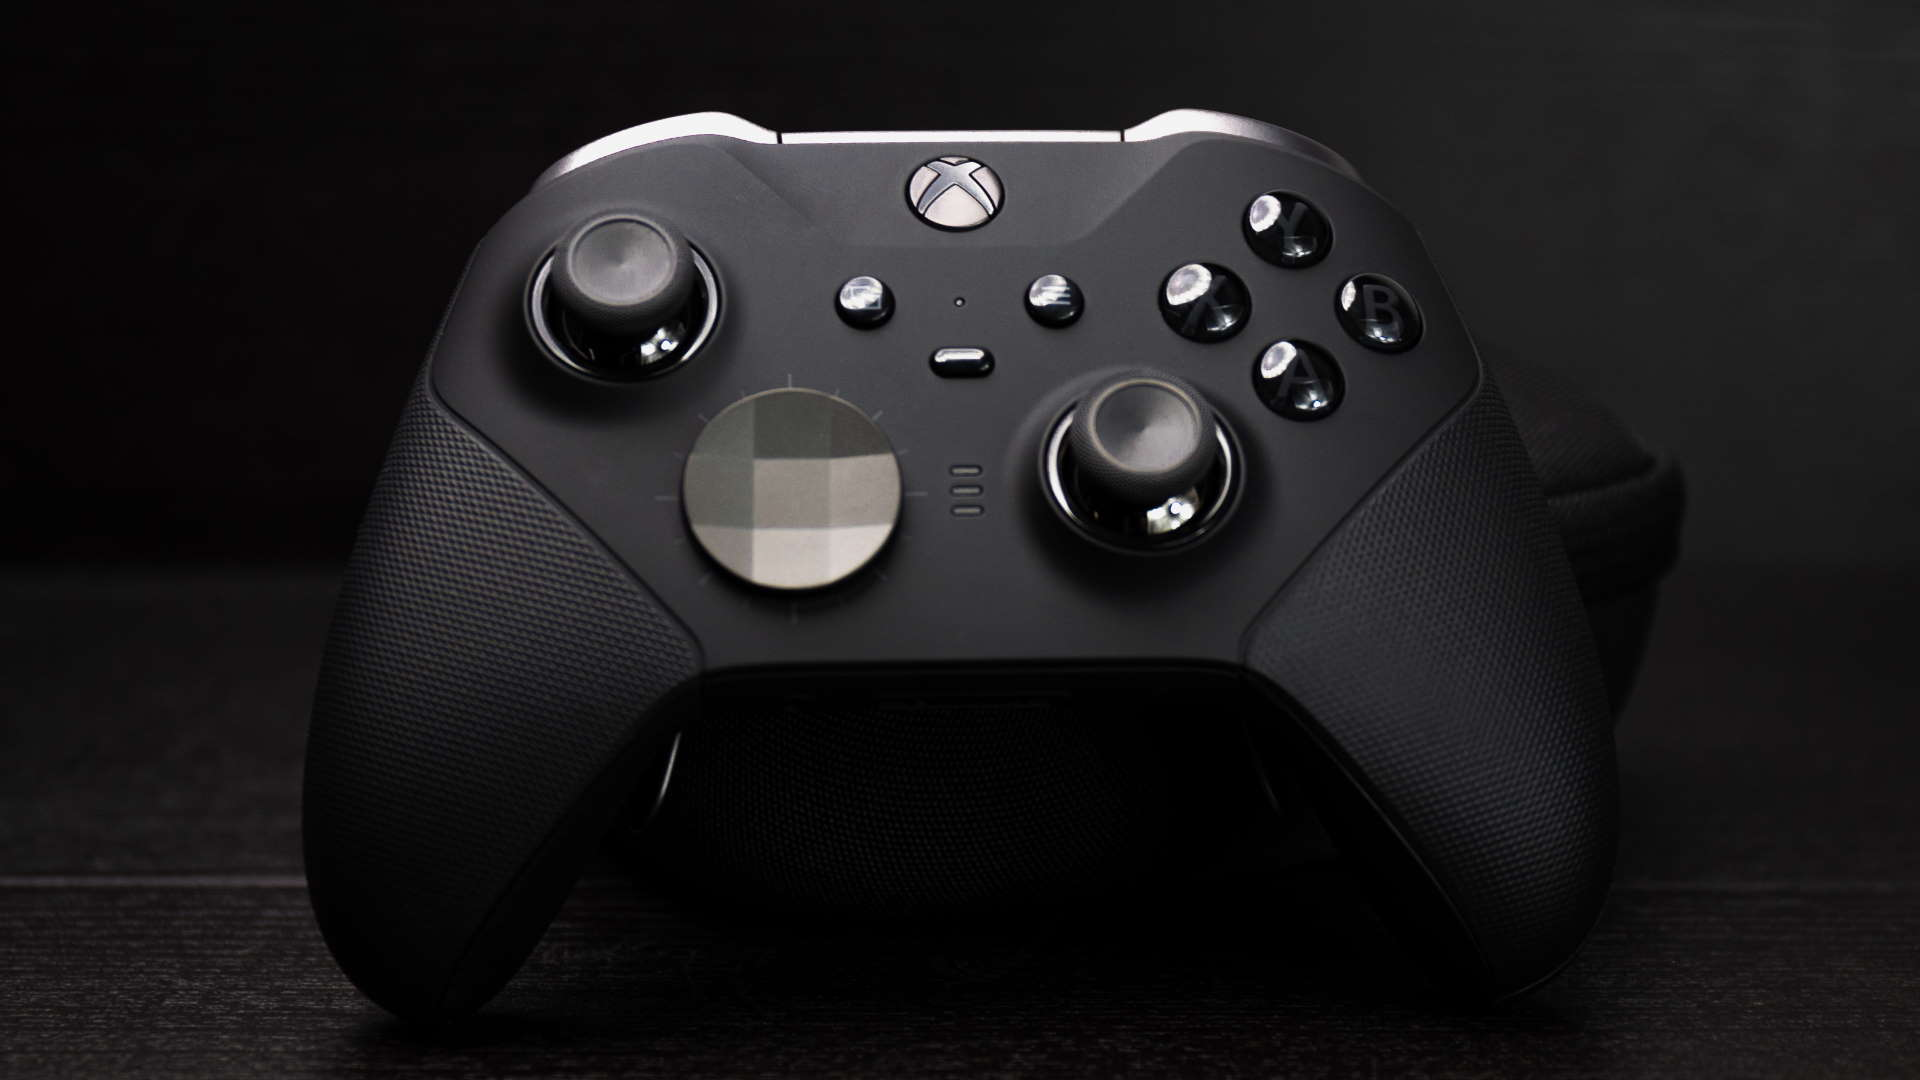 What is the best game controller for PC in 2019? Pads